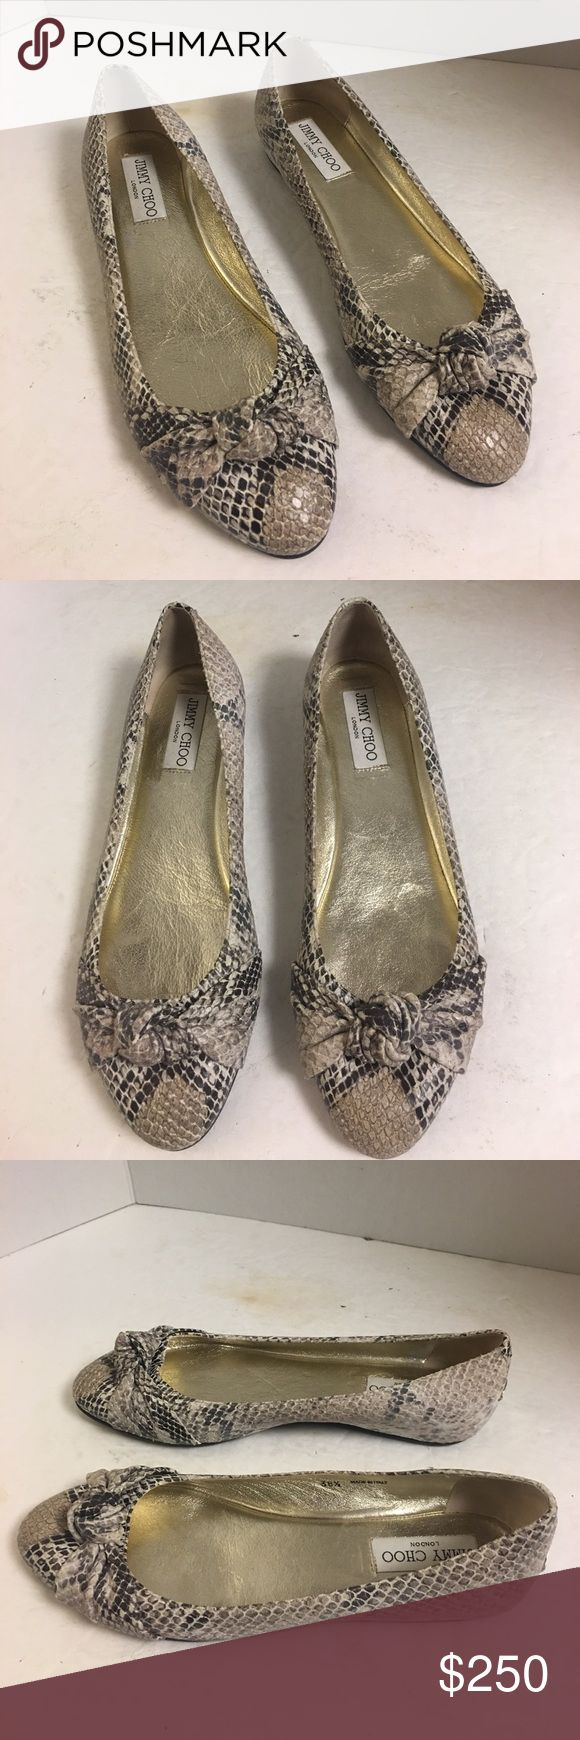 New Jimmy Choo snake embossed leather ballet flats Gorgeous pair of Jimmy Choo natural snake embossed leather ballet flats. New without box. Size 38 1/2. Jimmy Choo Shoes Flats & Loafers